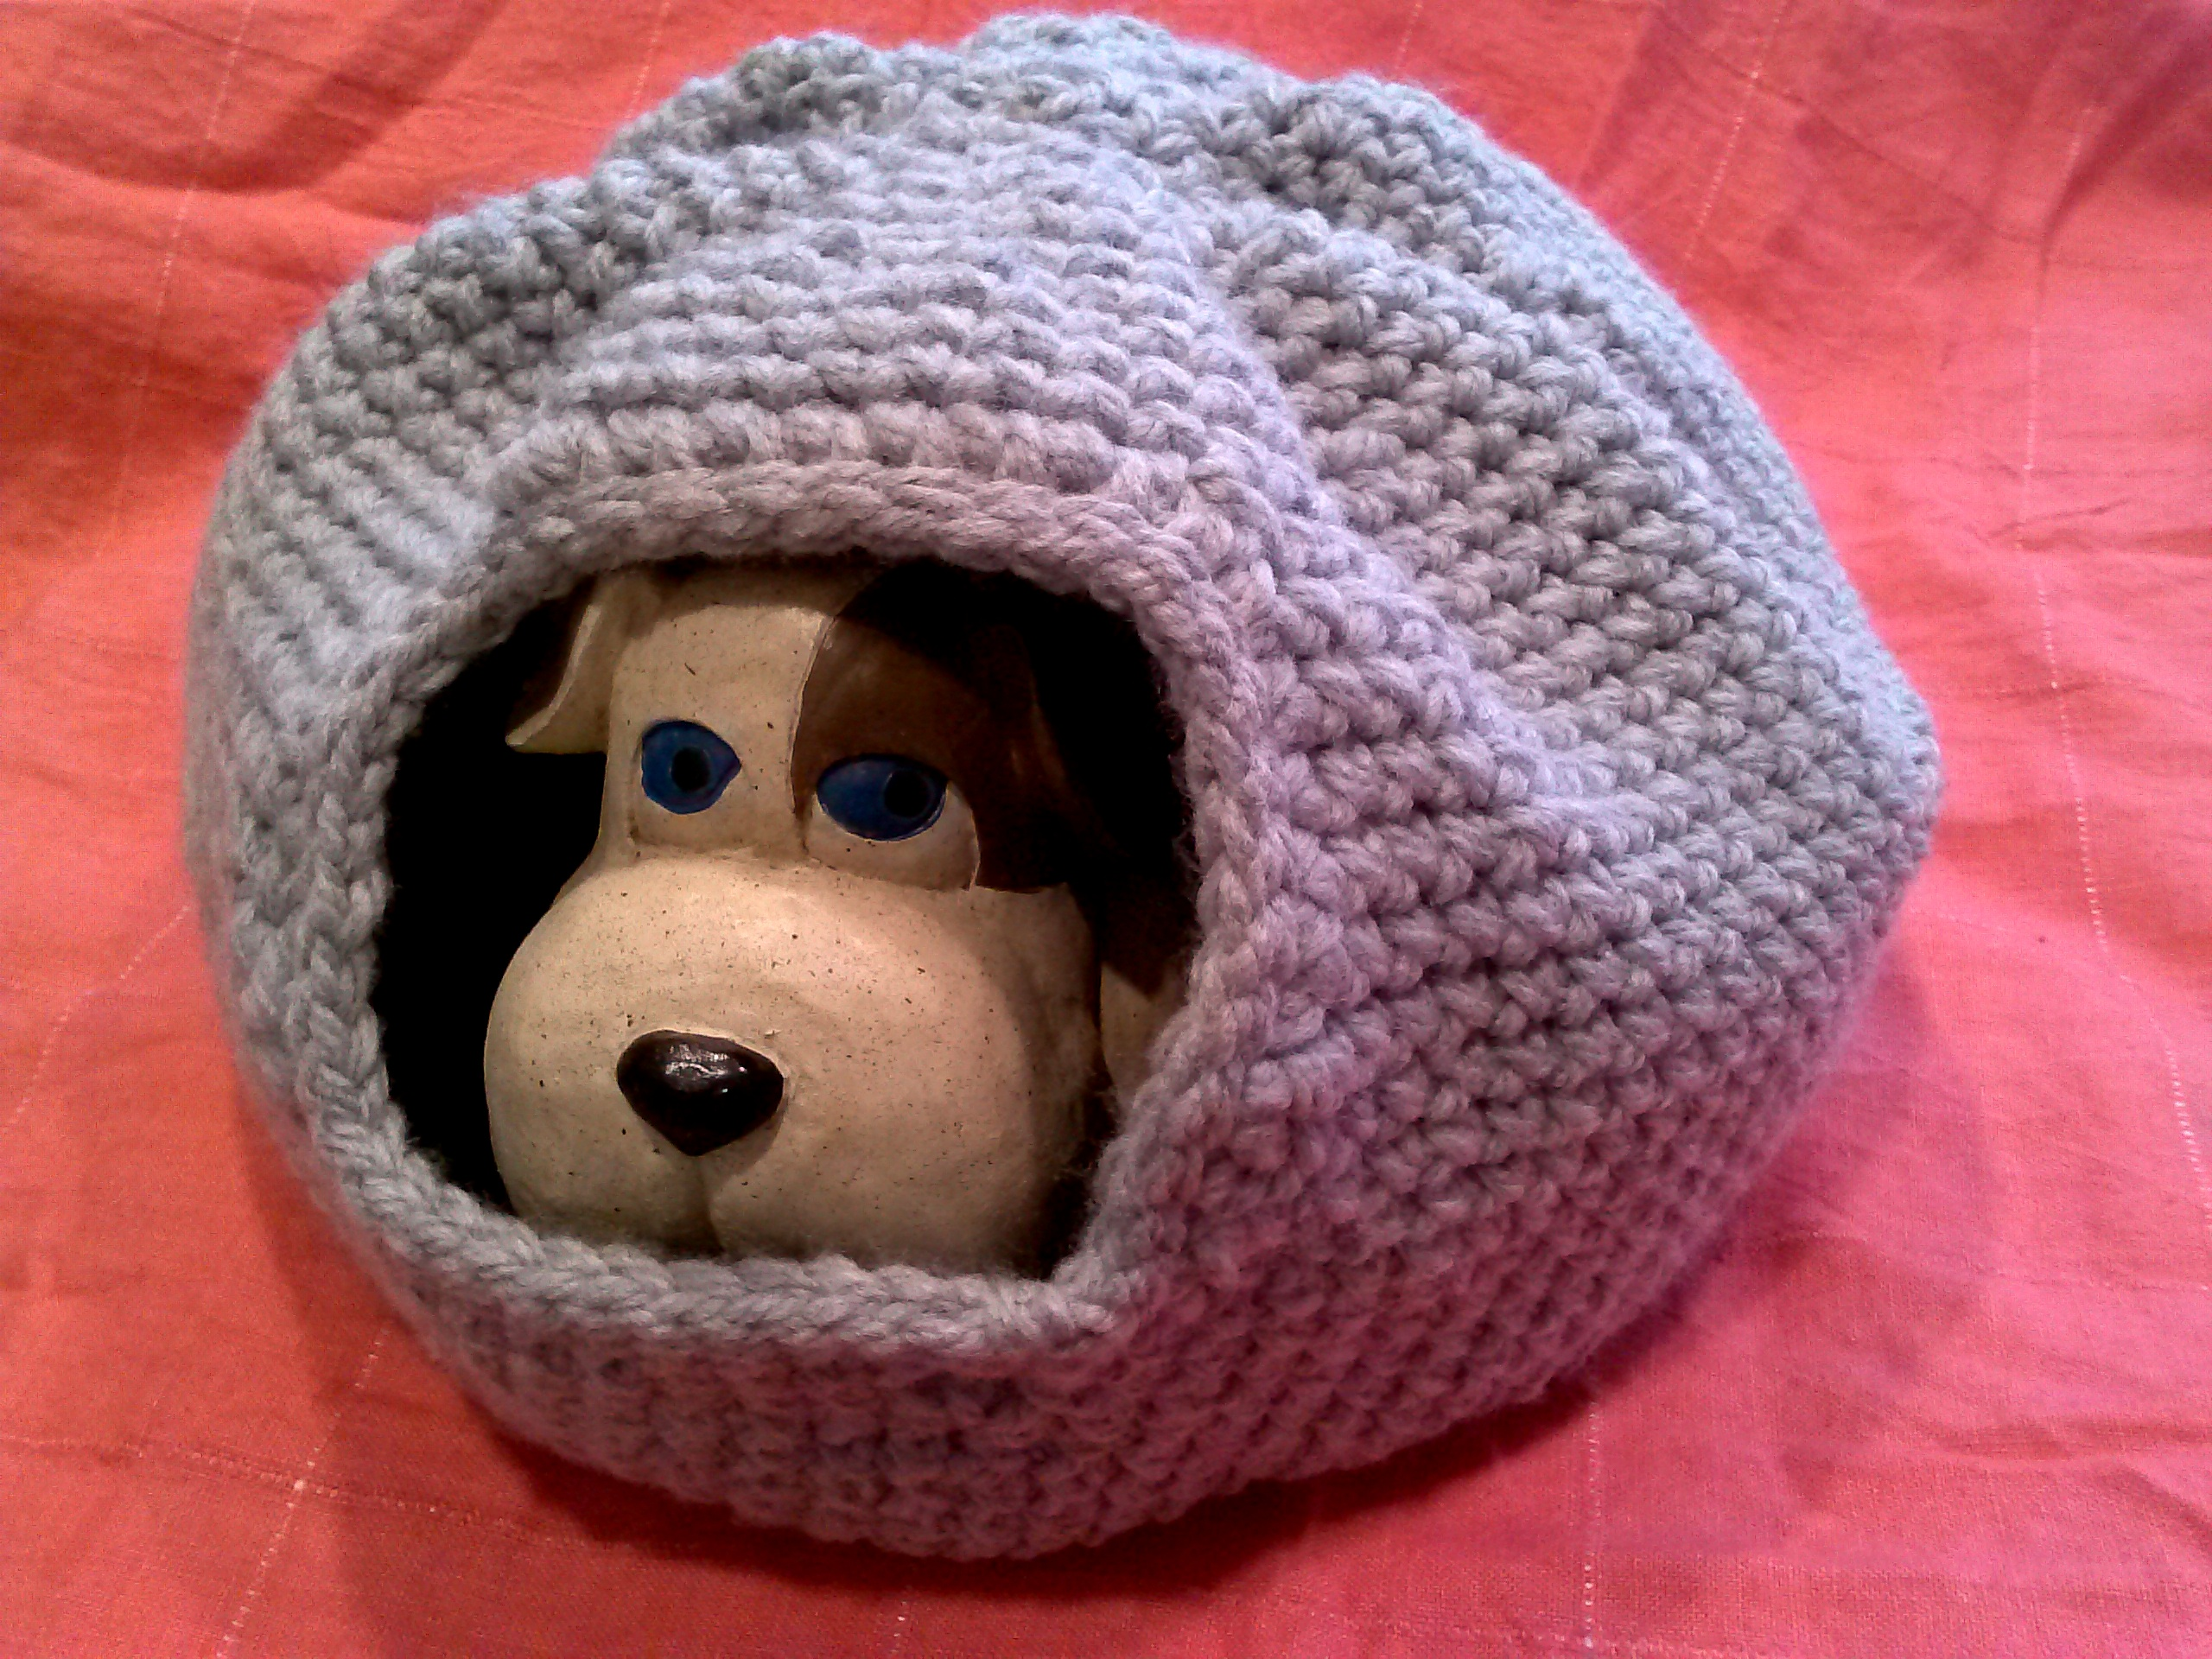 Crochet Pattern For Cat Bed : crocheted cat bed